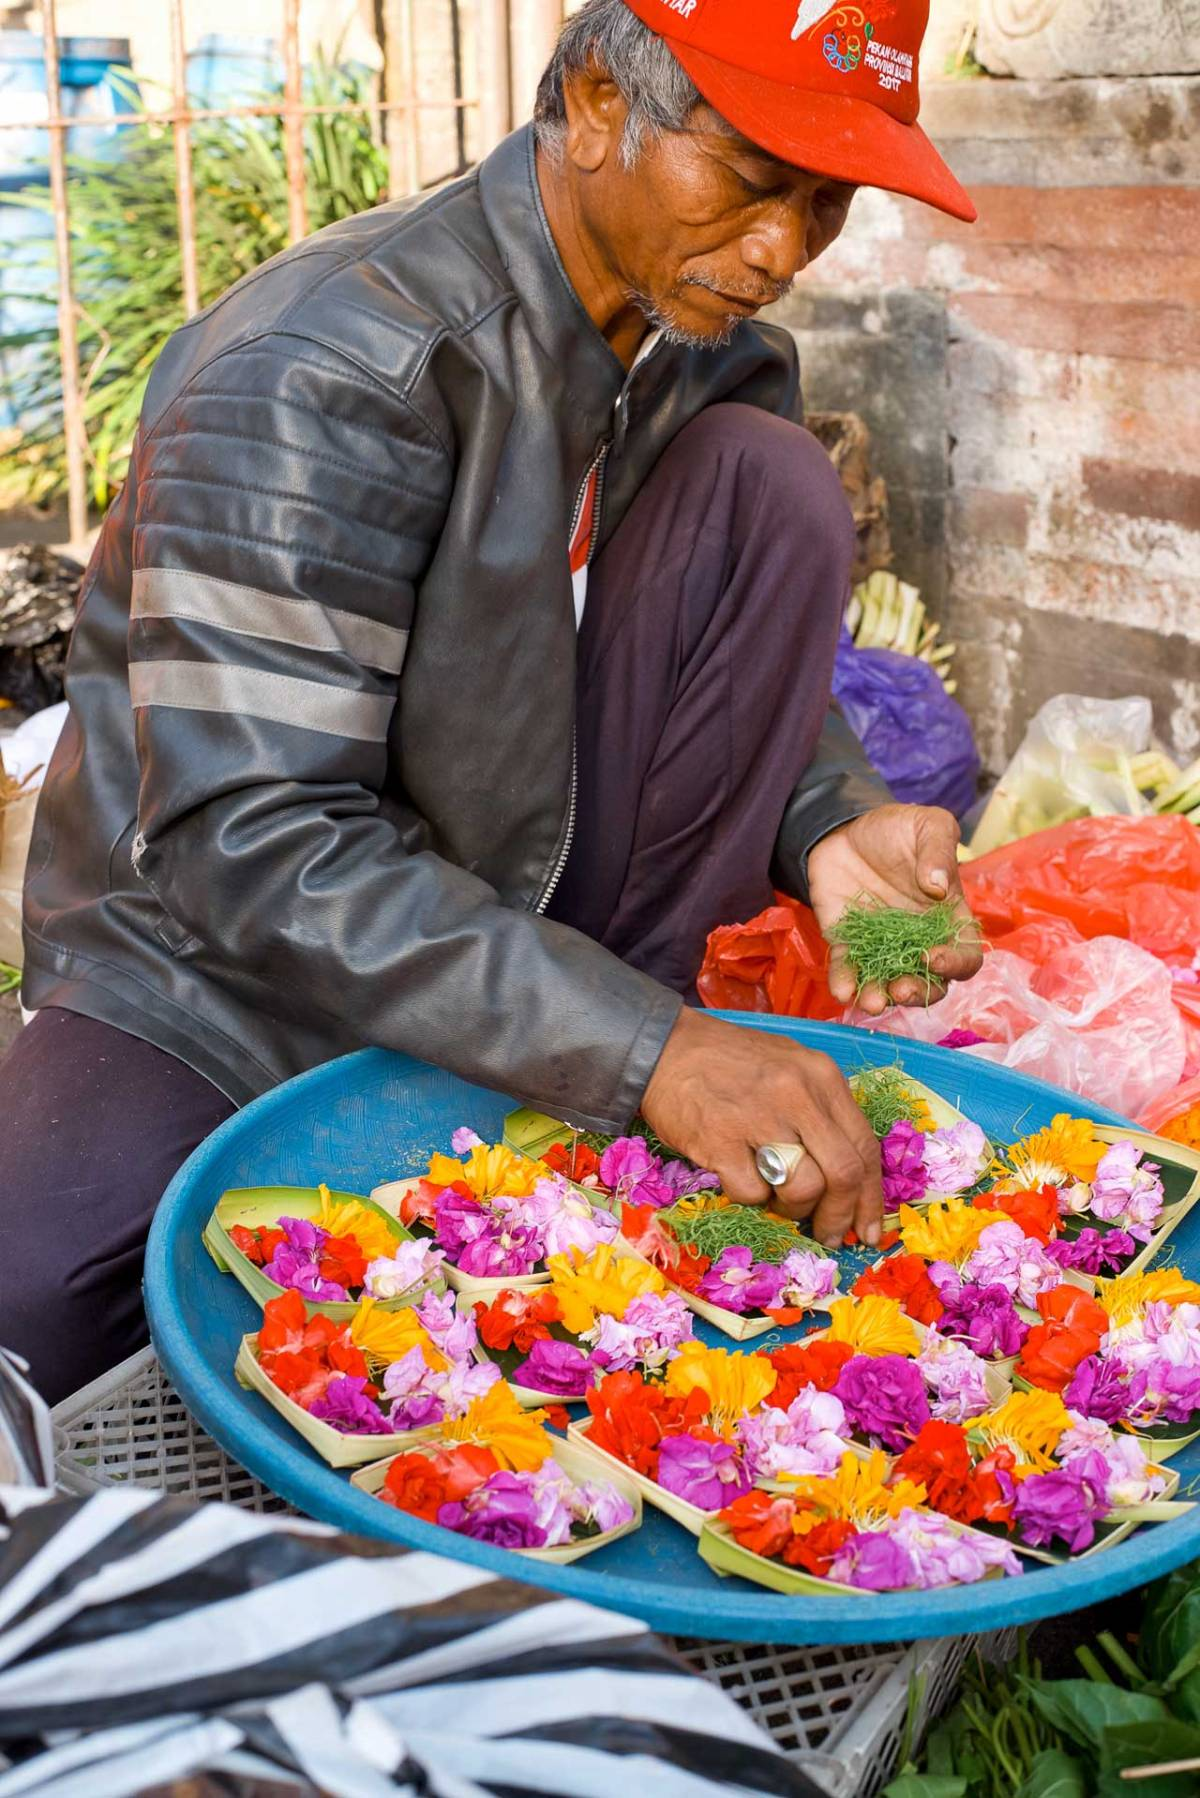 Balinese Man Making Canang Sari Offerings Pasar Ubud - Bali Street Photographer Tour